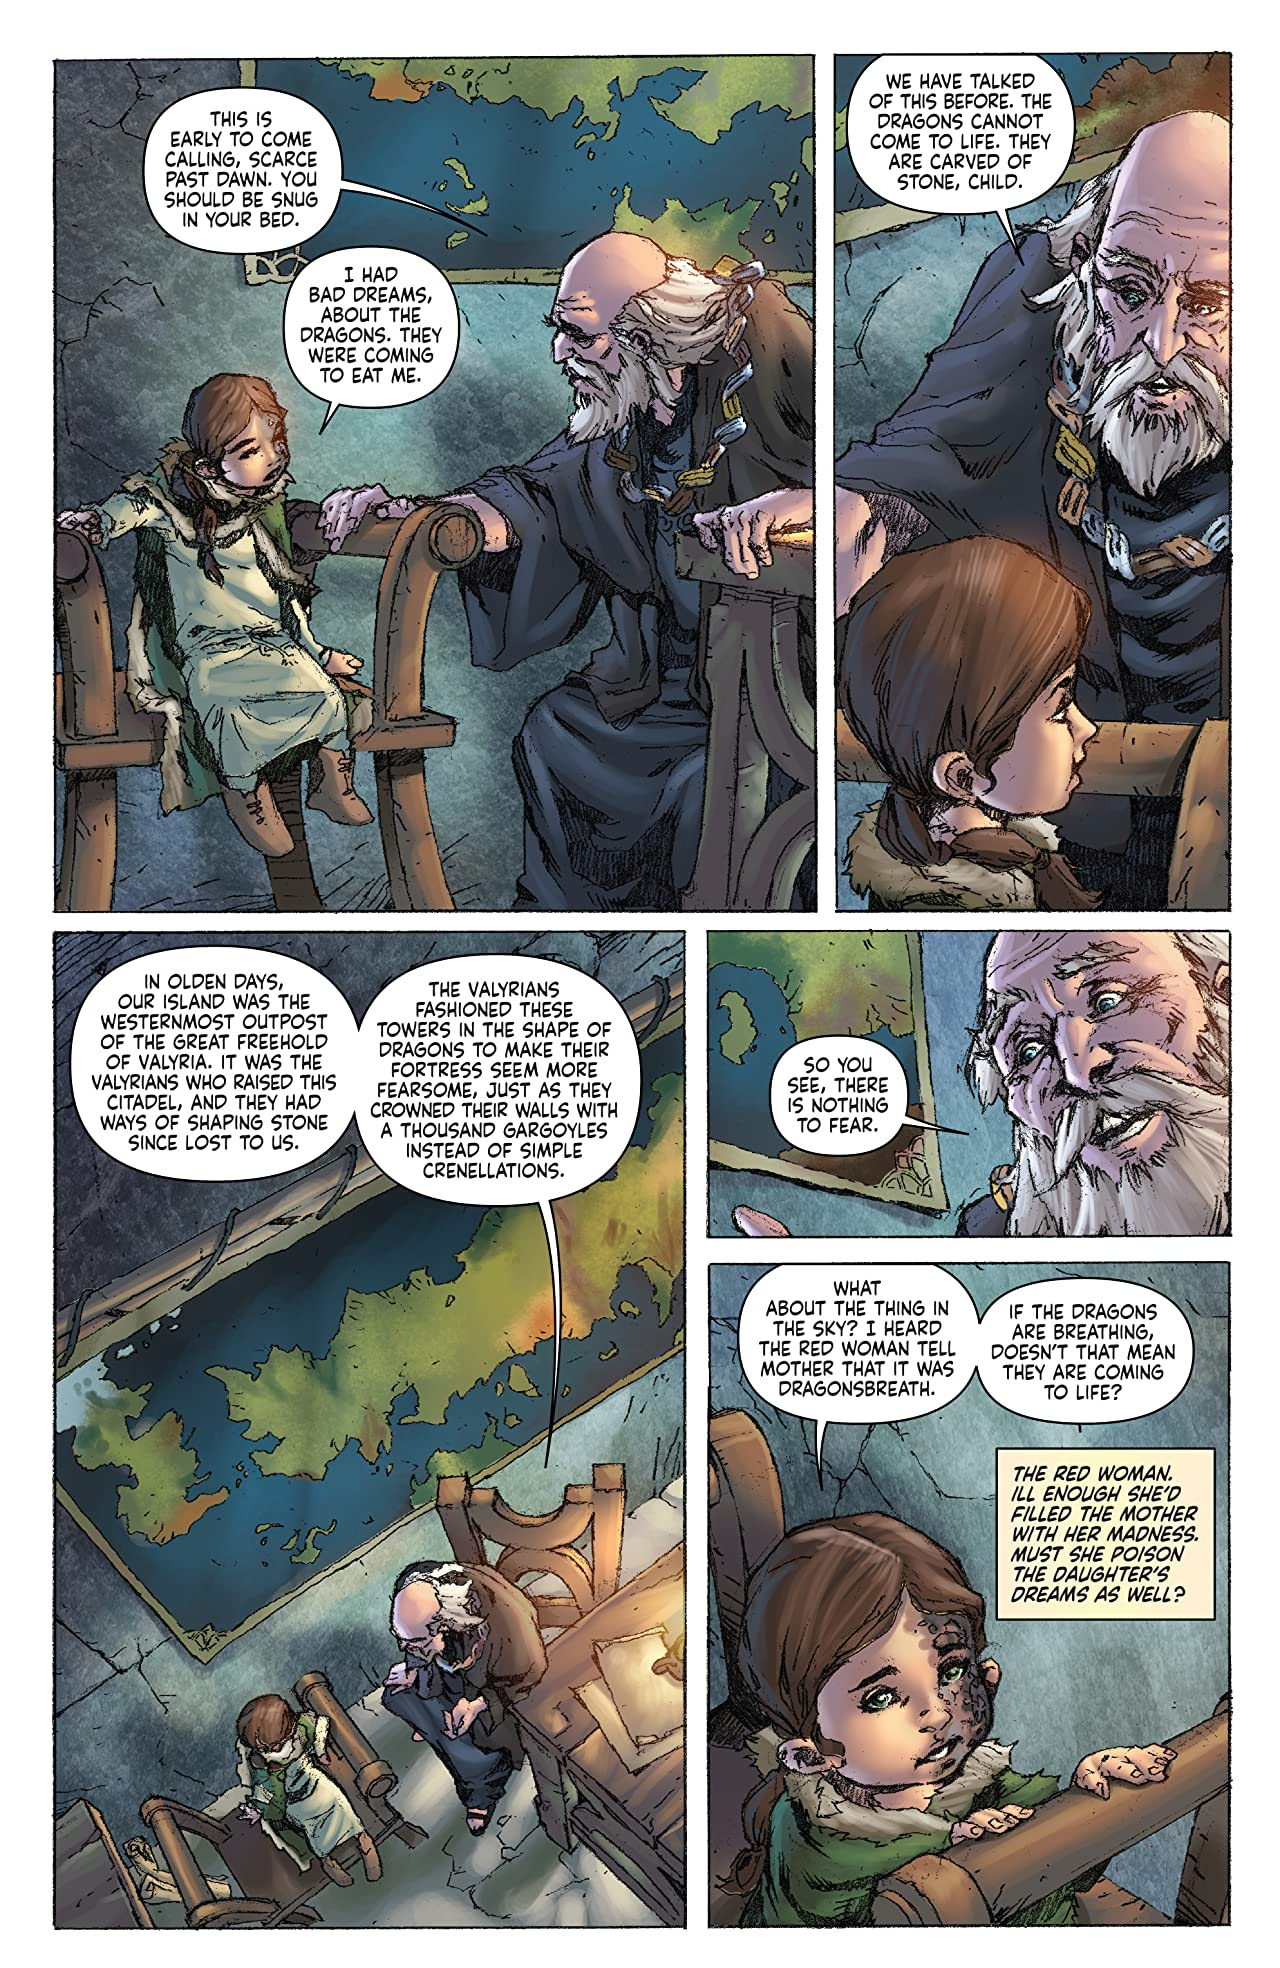 George R.R. Martin's A Clash Of Kings: The Comic Book No.1